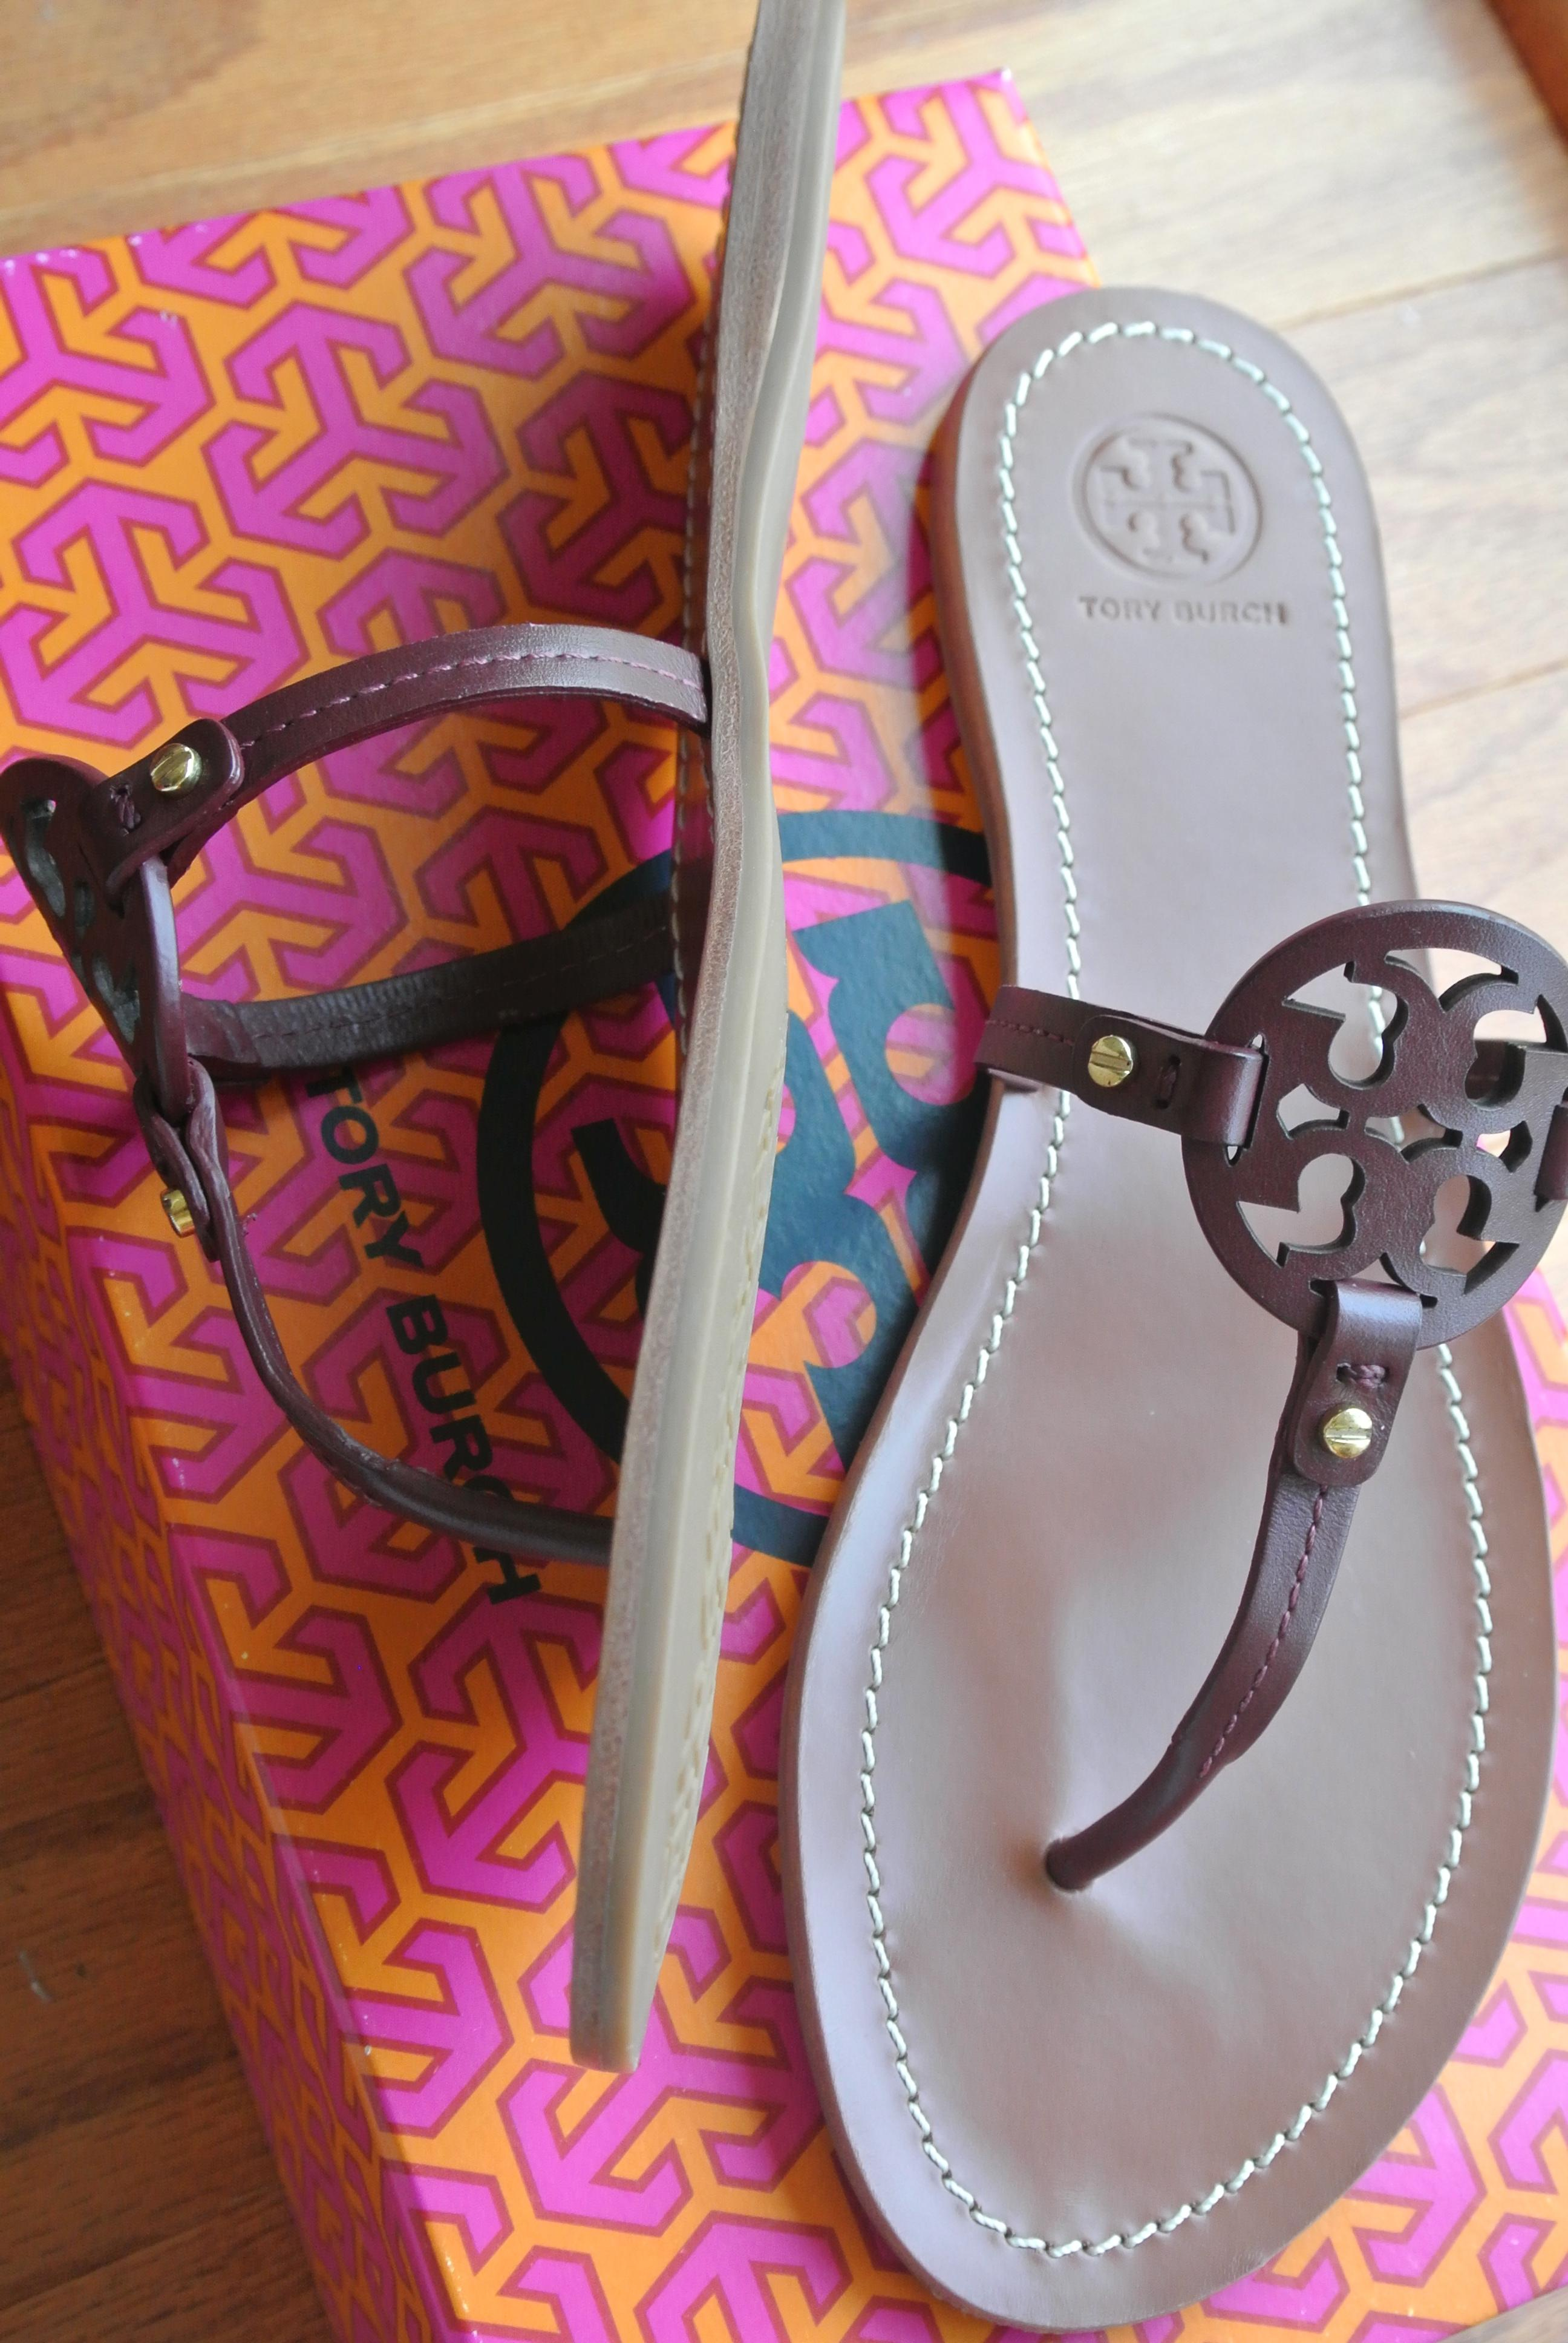 0cb07a12f ... Tory Burch Red End-of-summer-sale Mini Miller Sandals Size US US ...